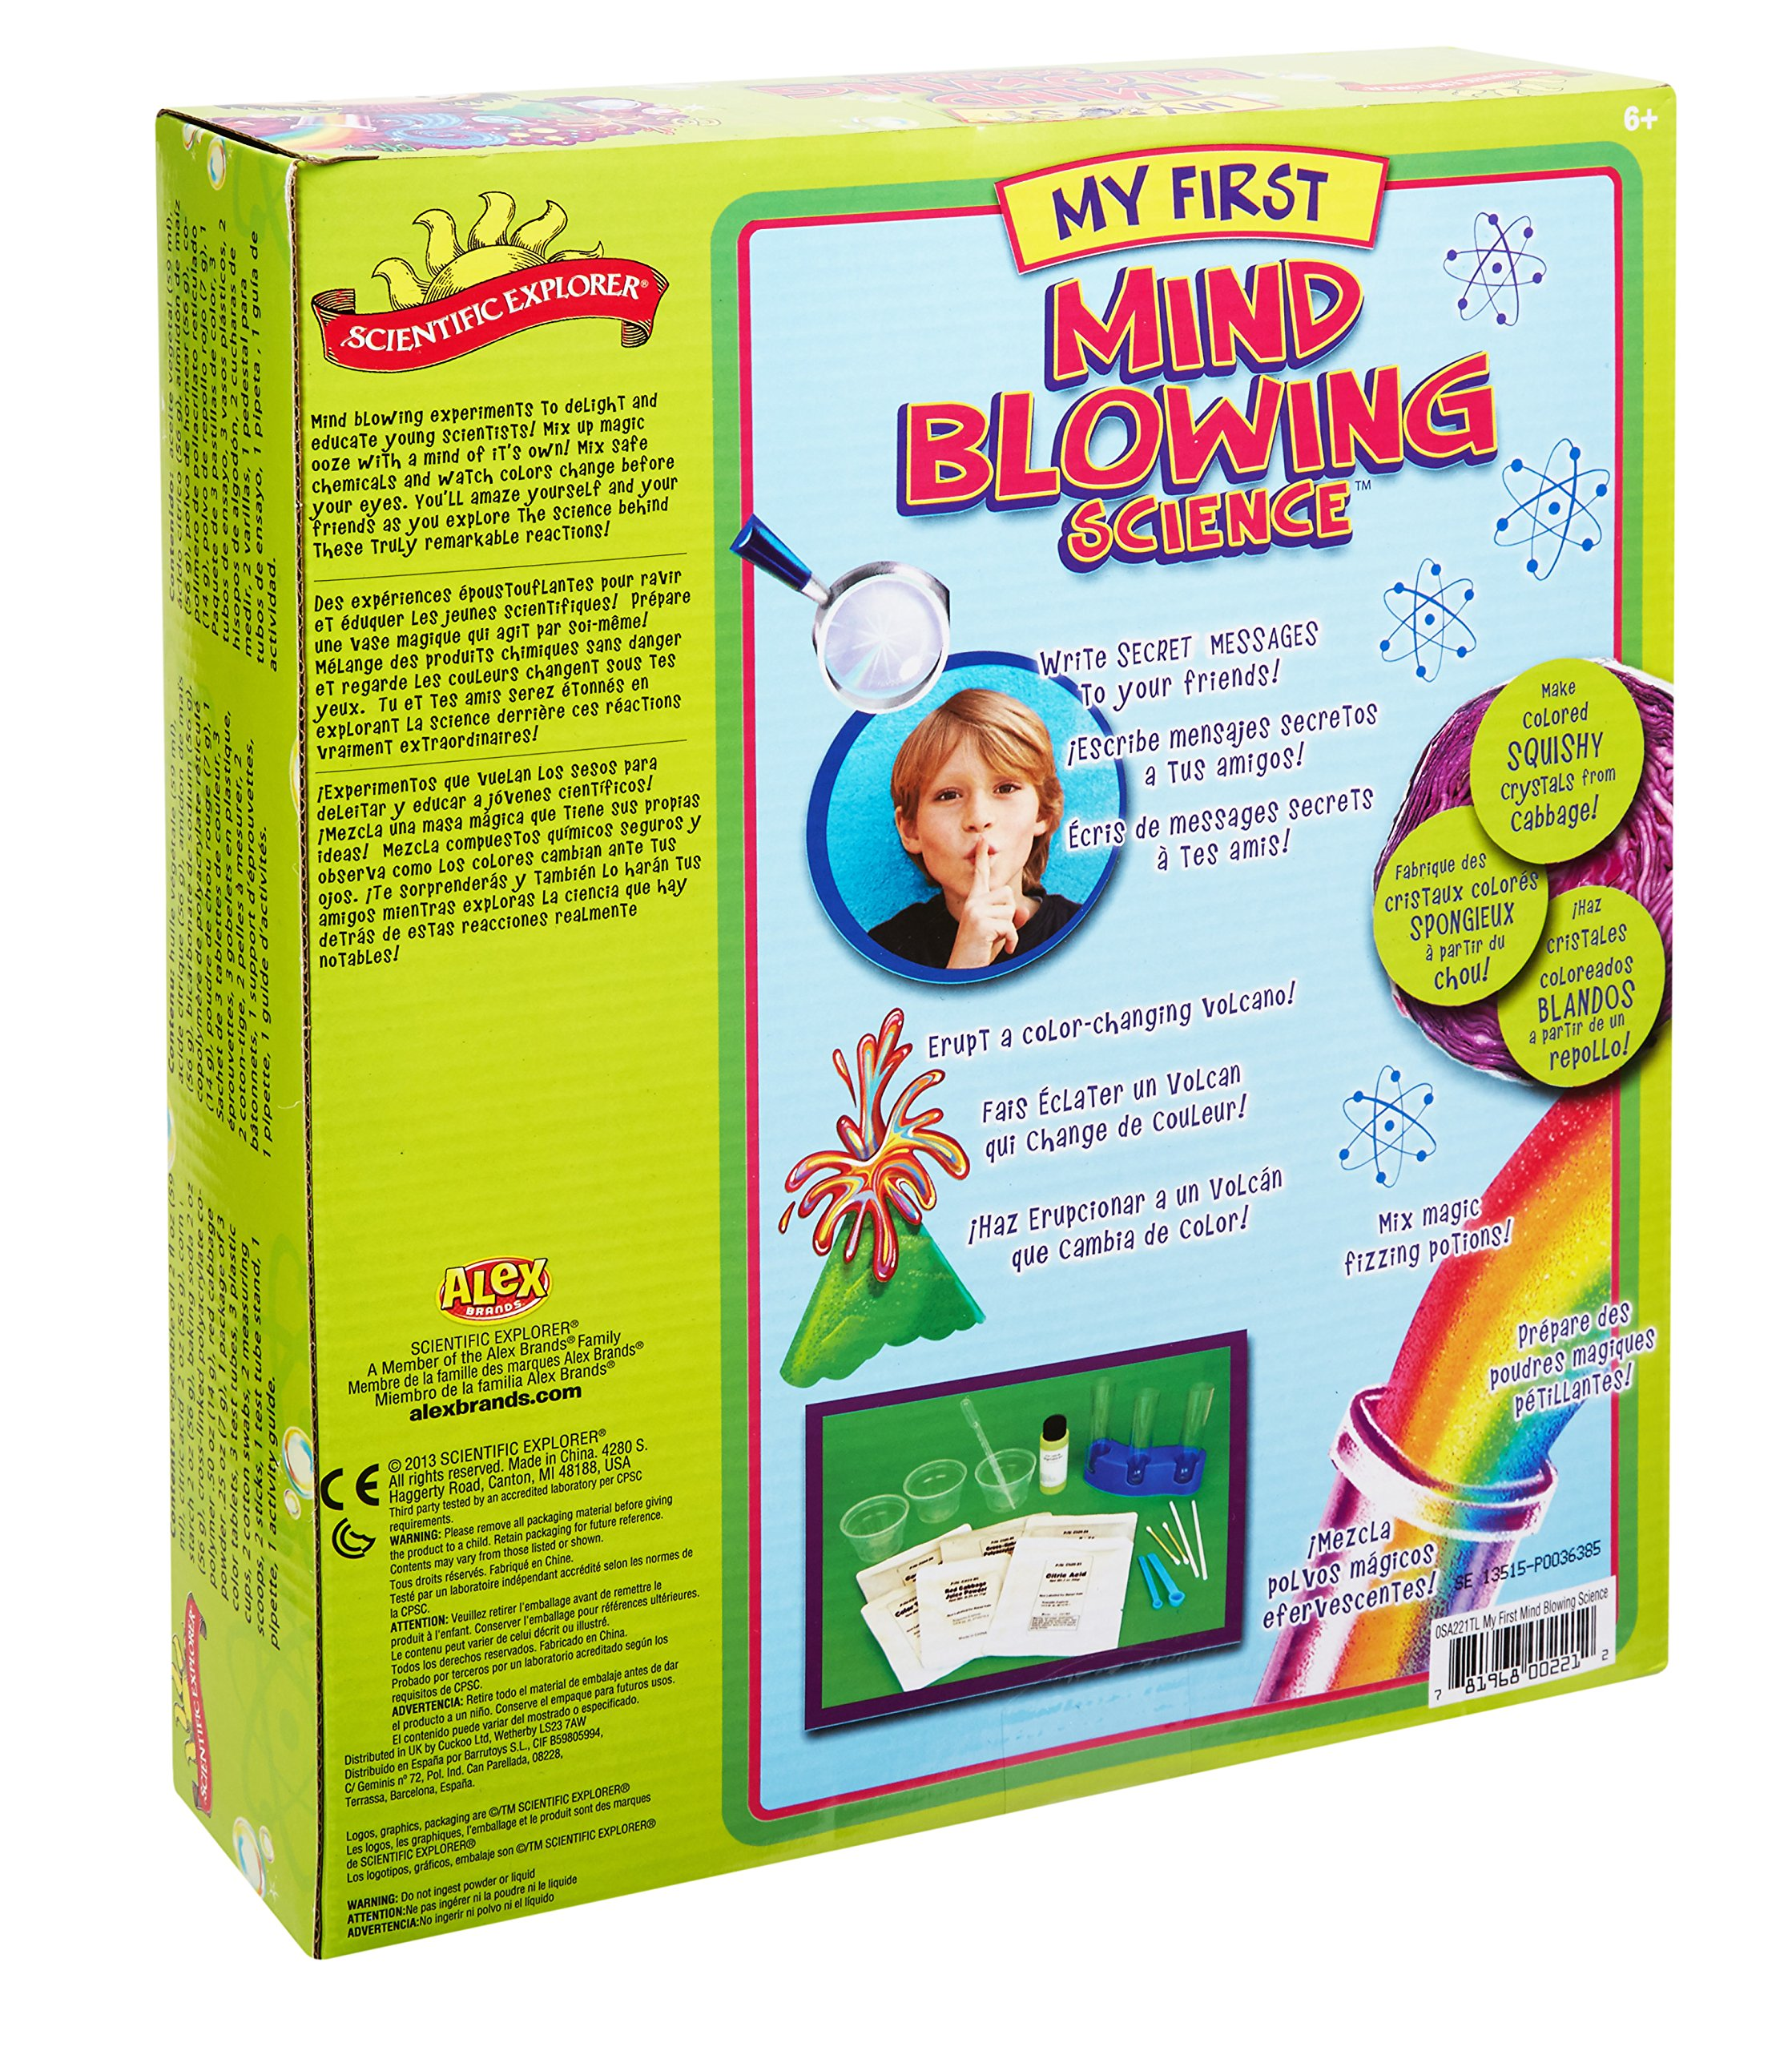 Scientific Explorer My First Mind Blowing Science Kit by Scientific Explorer (Image #2)